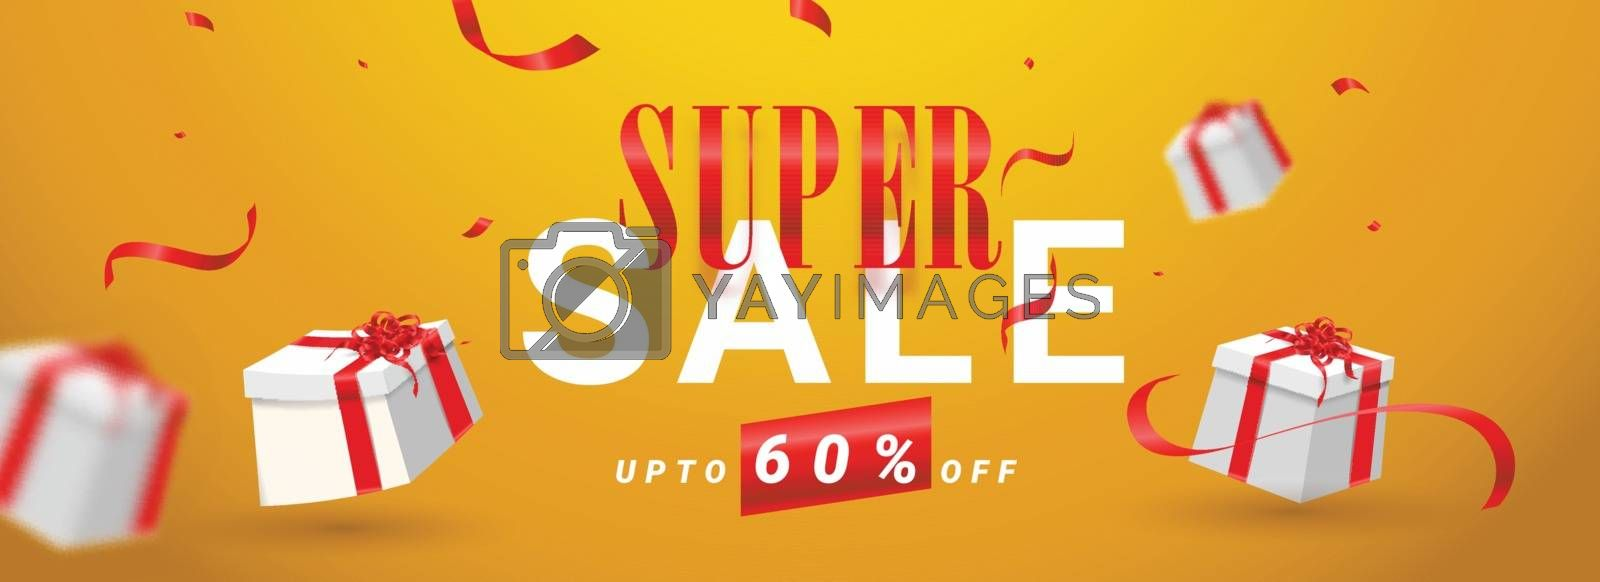 Royalty free image of Super Sale header or banner design with 60% discount offer and 3 by aispl